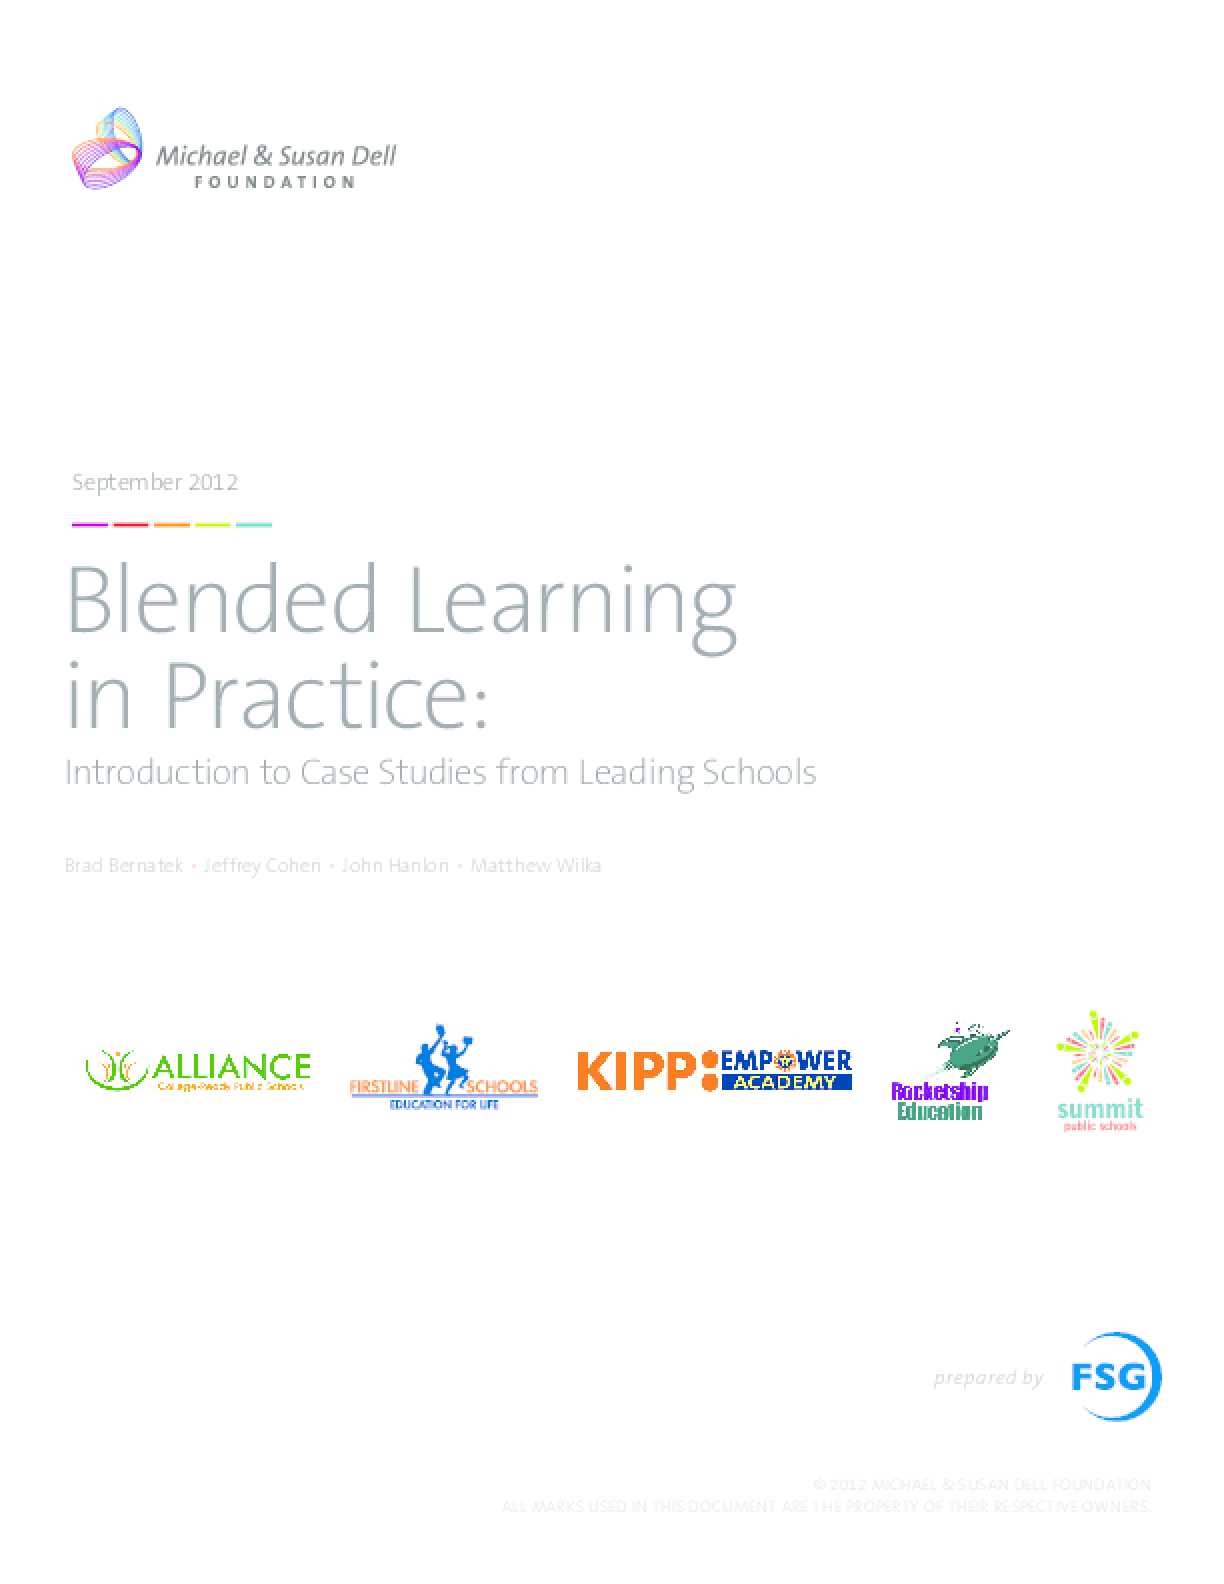 Blended Learning in Practice: Case Studies from Leading Schools